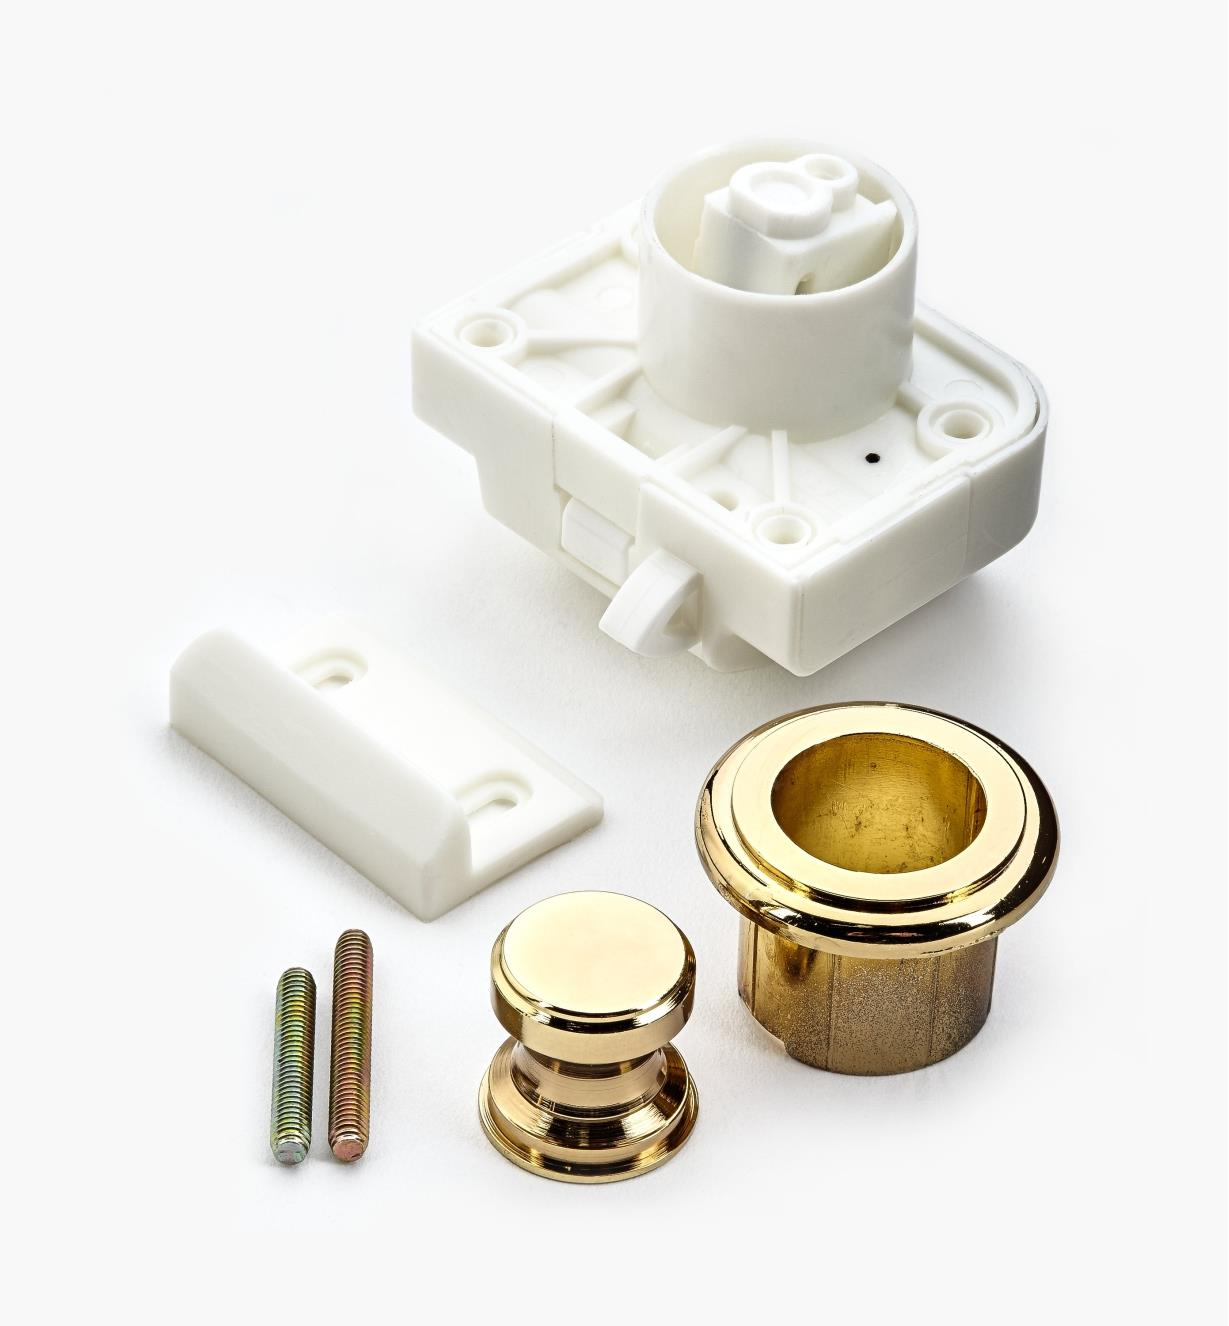 00S3213 - Polished Brass Push Knob/Catch